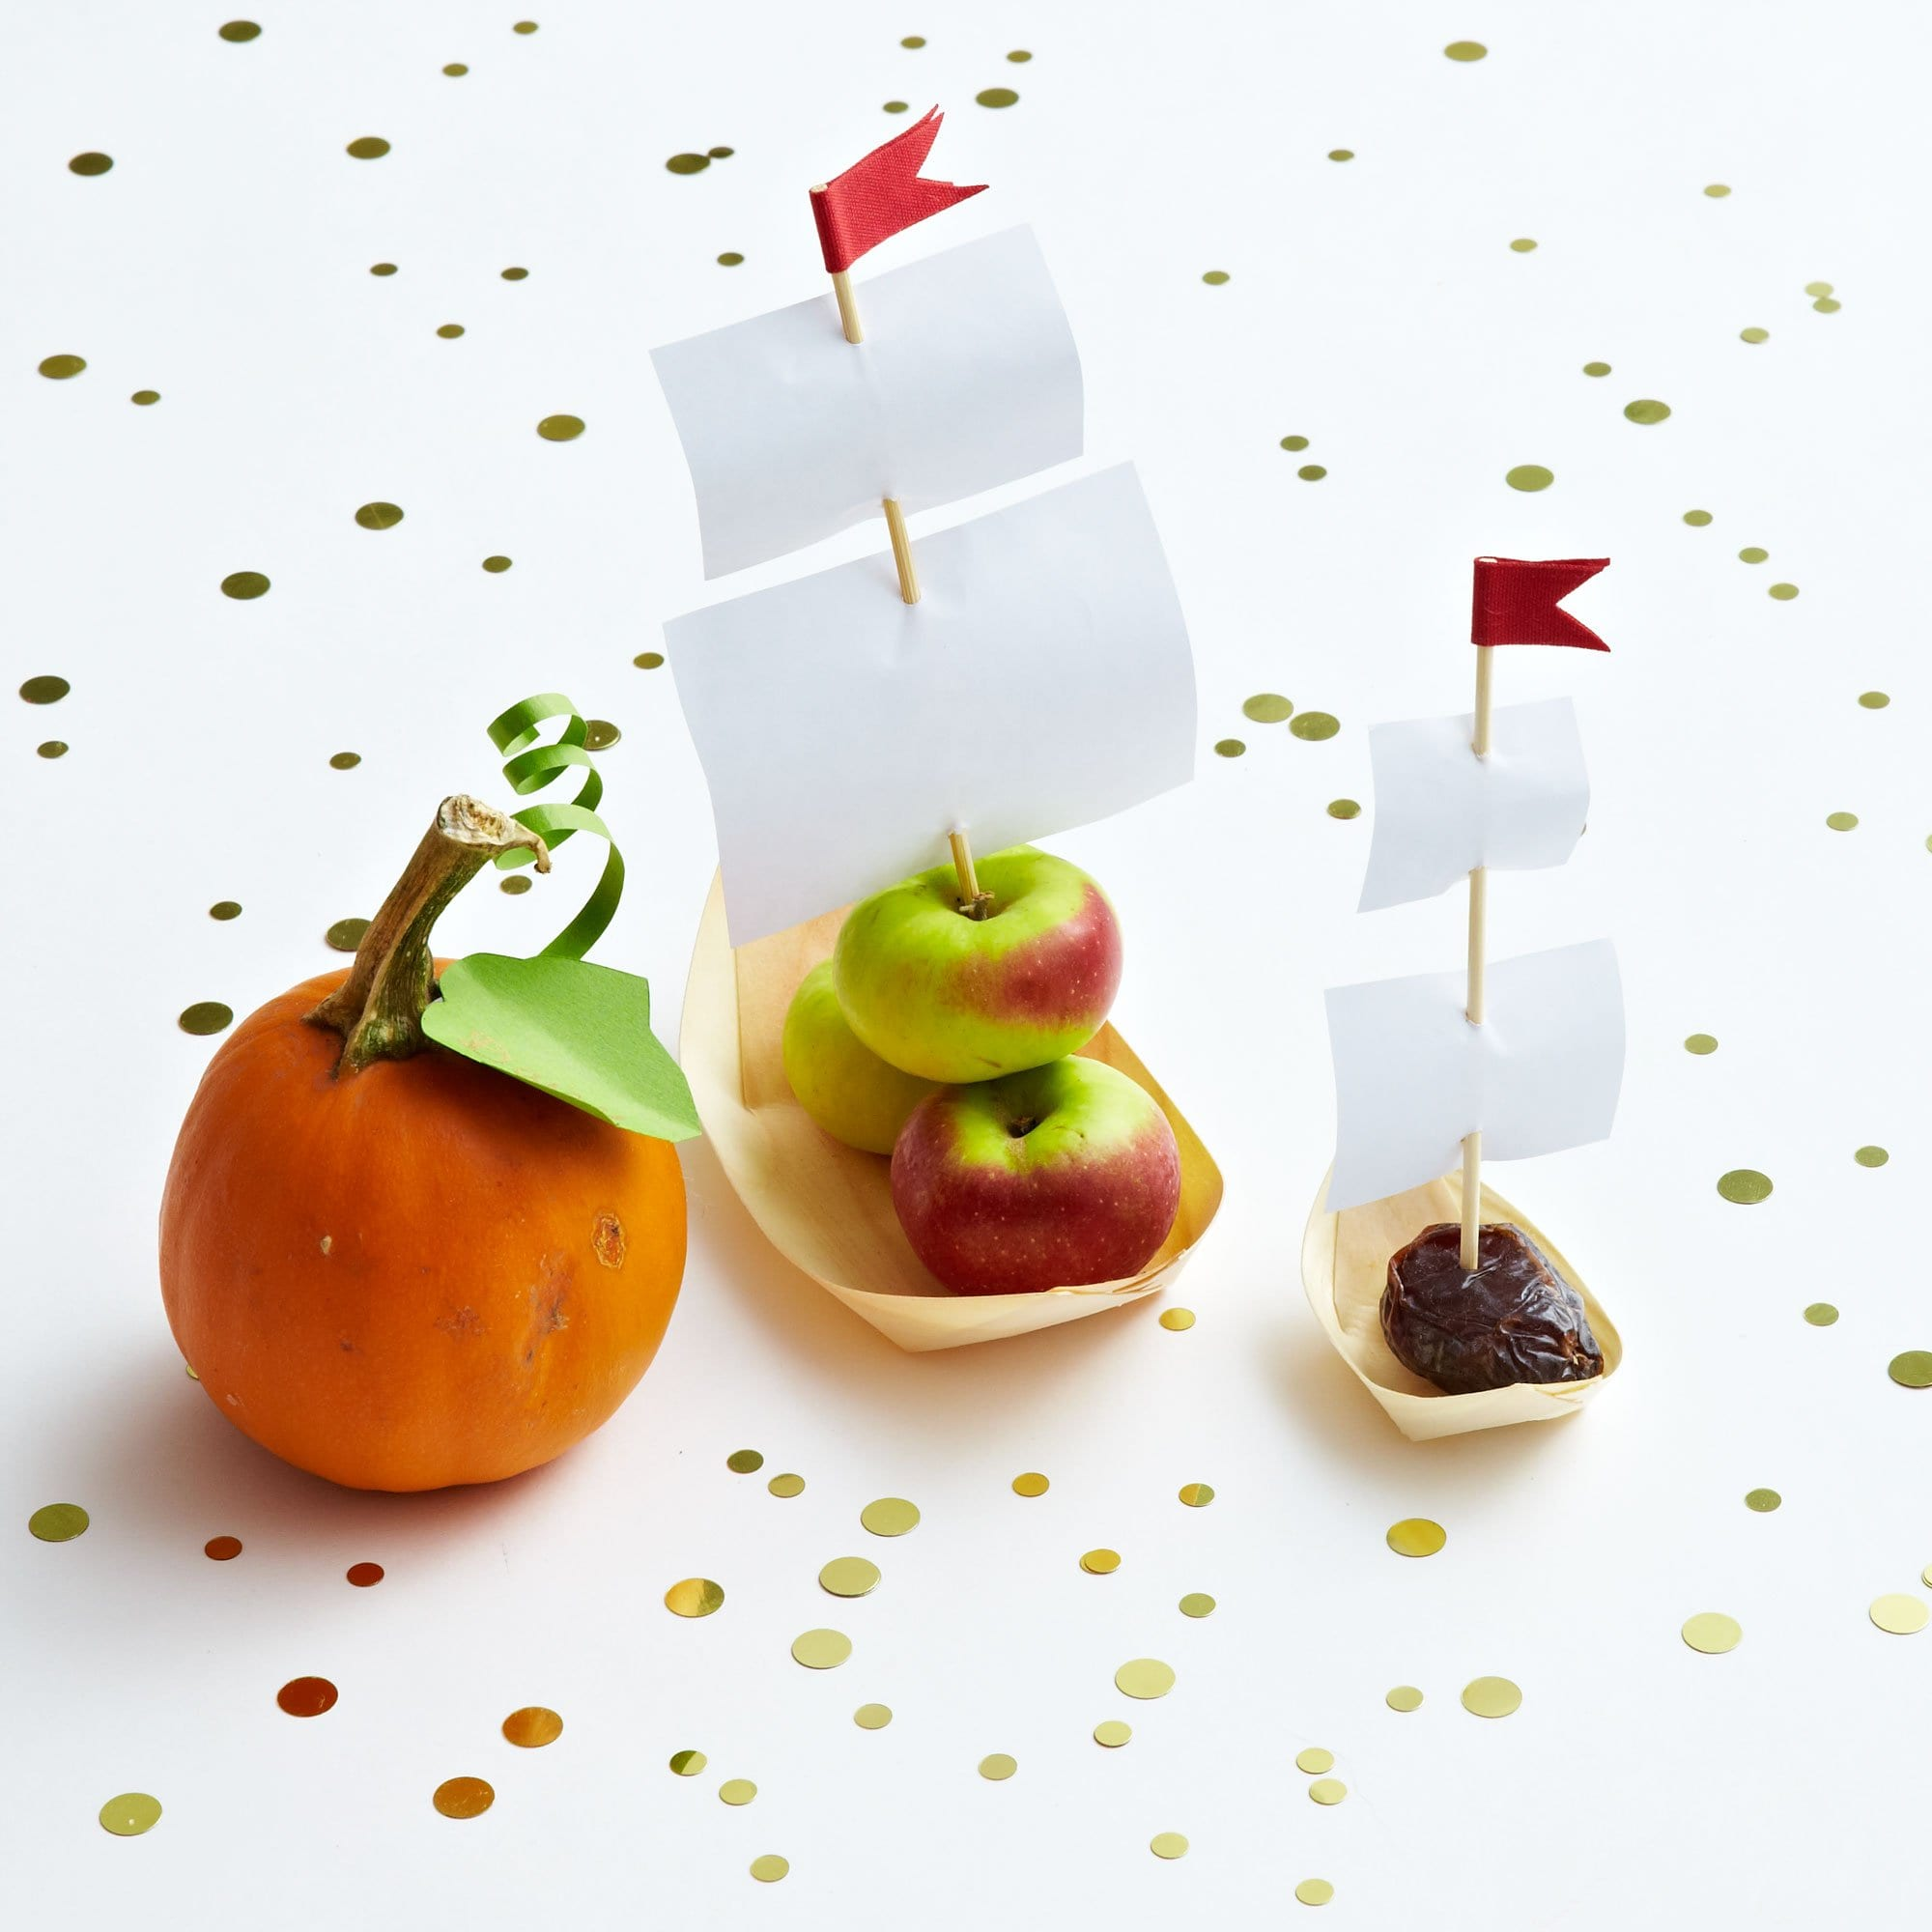 Darcy Miller Designs Apple Sailboats Thanksgiving, Kids Table, Paper Craft, Mayflower, Healthy Snacks, Apple Craft, Crab Apples, Downloadable Template